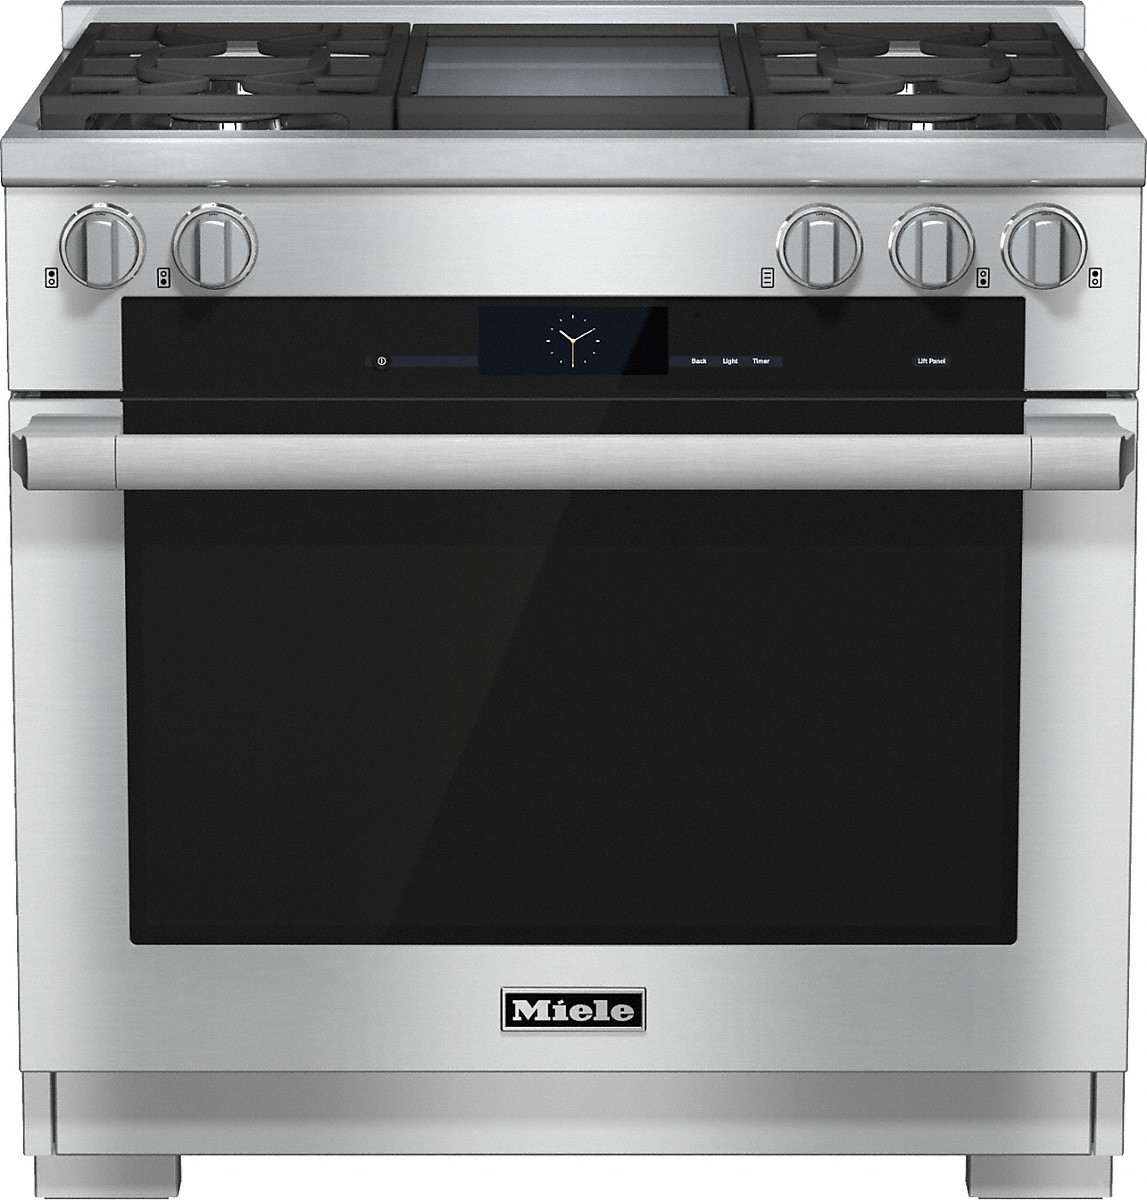 Model: 25193651USA | Miele 36 inch rangeDual Fuel with M Touch controls, Moisture Plus and M Pro dual stacked burners